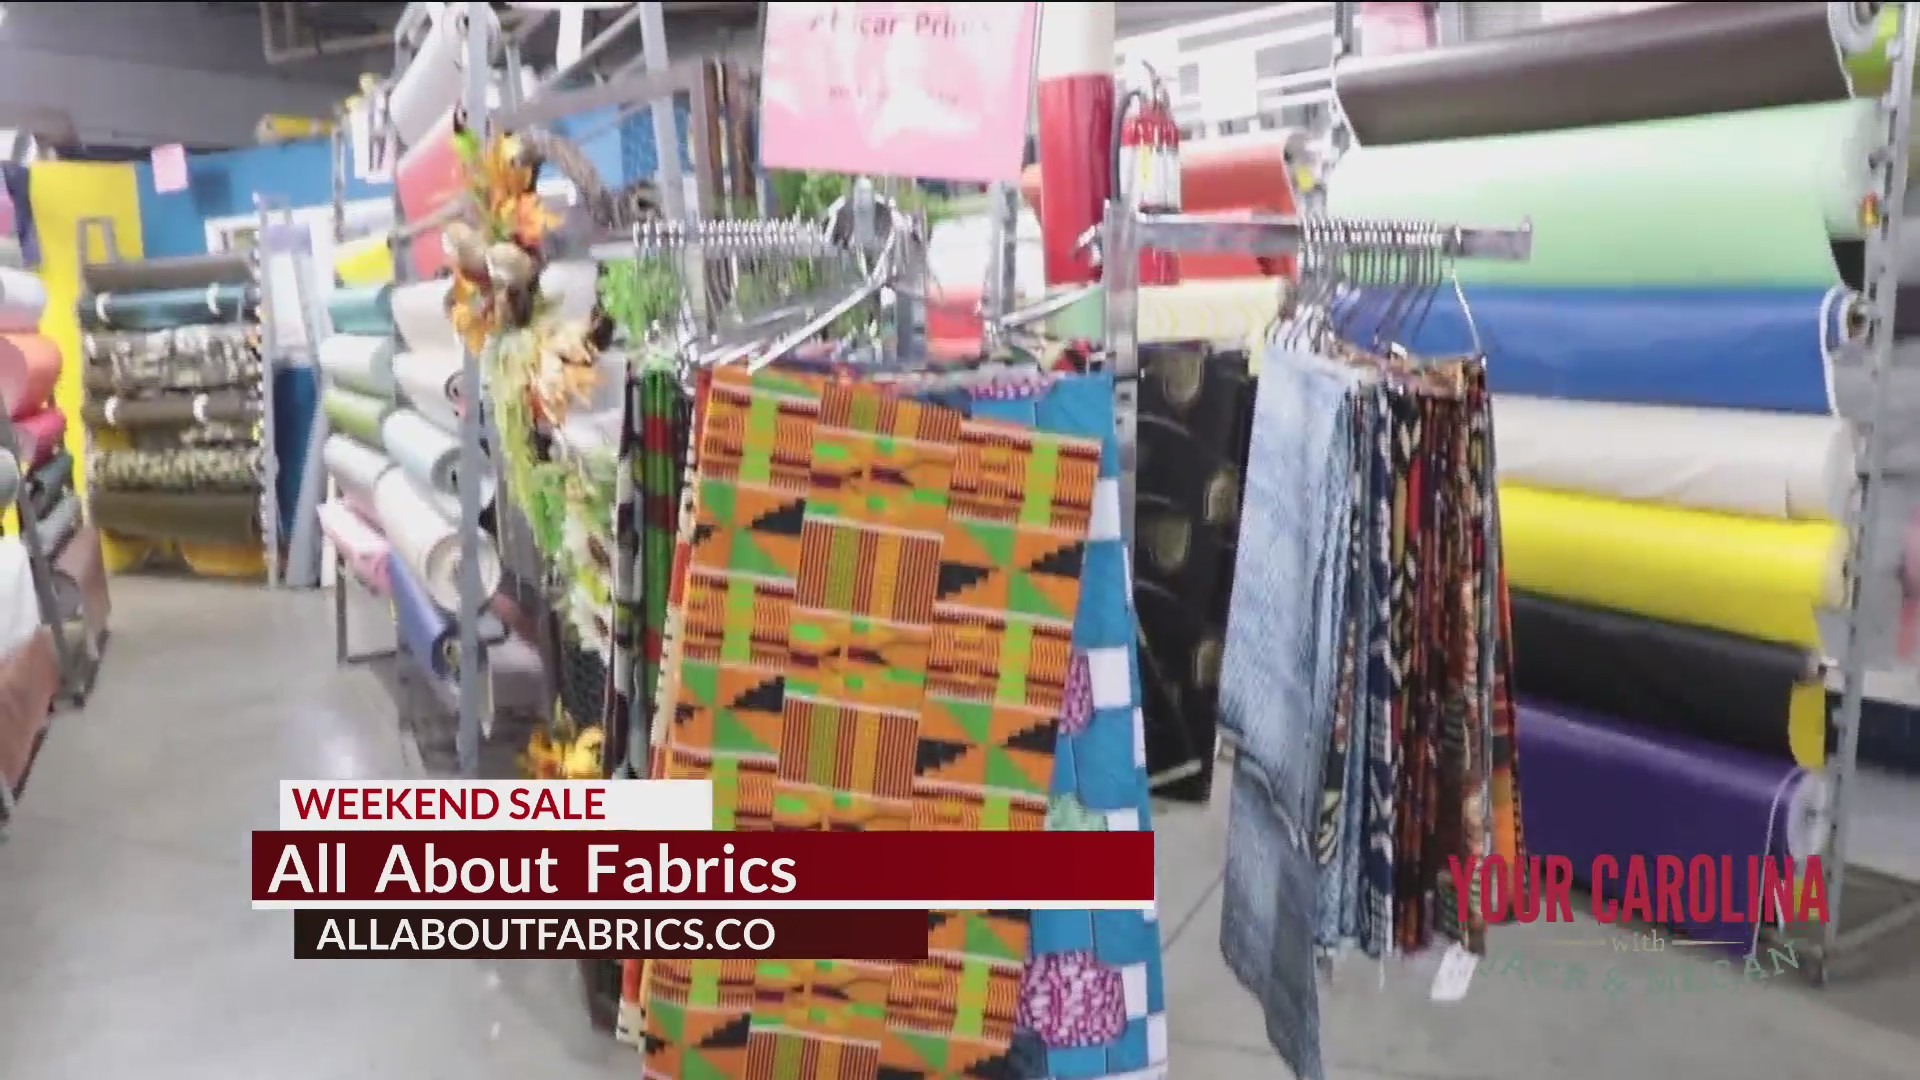 All About Fabrics Sale Happening This Weekend